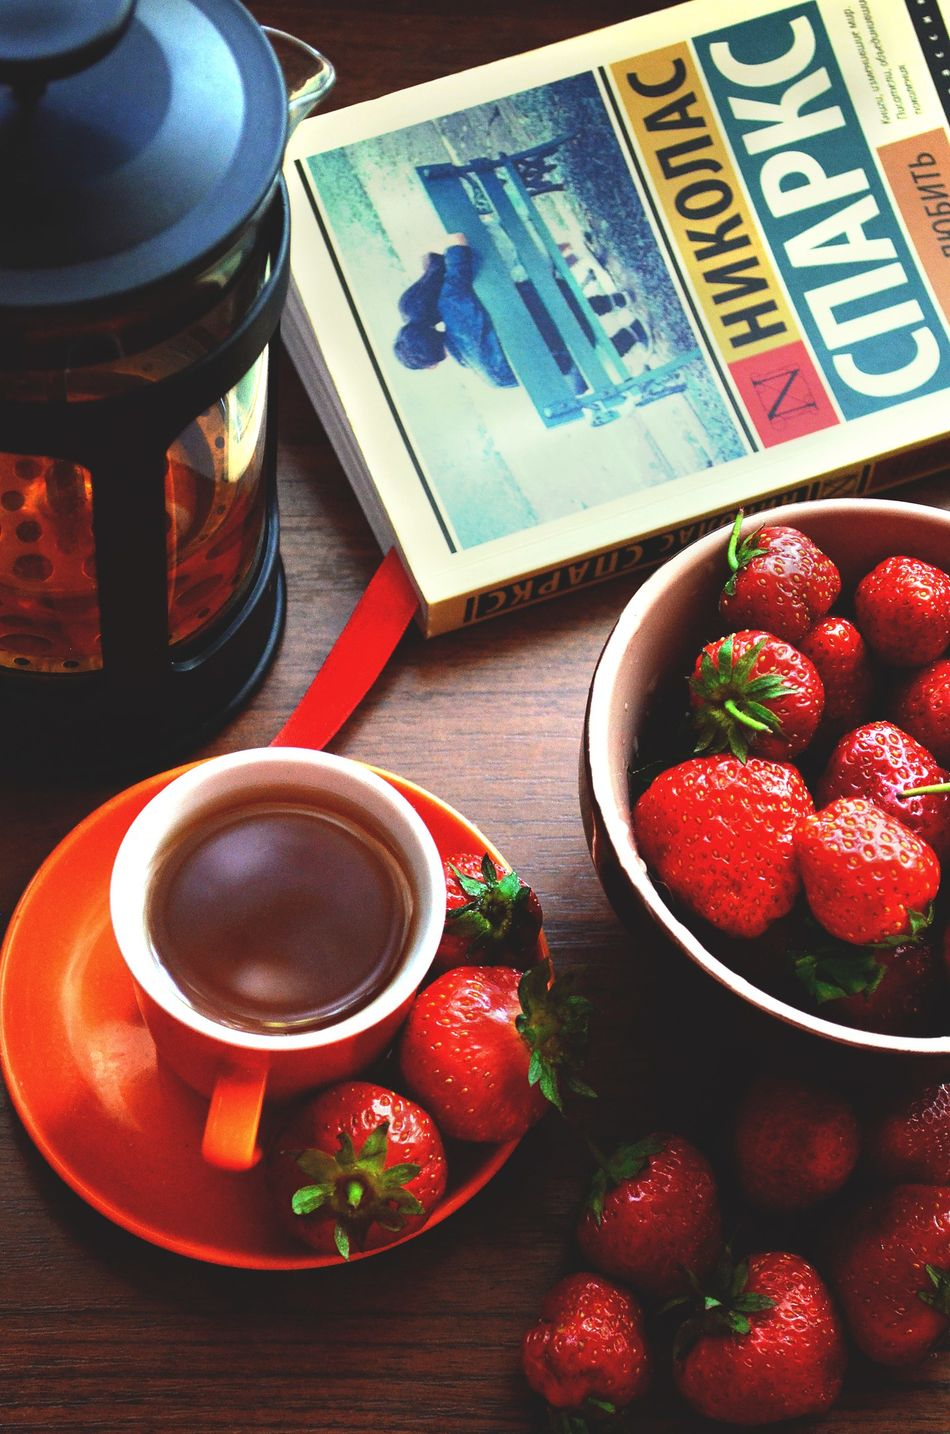 Strawberry Food Morning ElenaZ Summer Fruit Photo Photography Day Red Sweet Food Book Read Tea Love